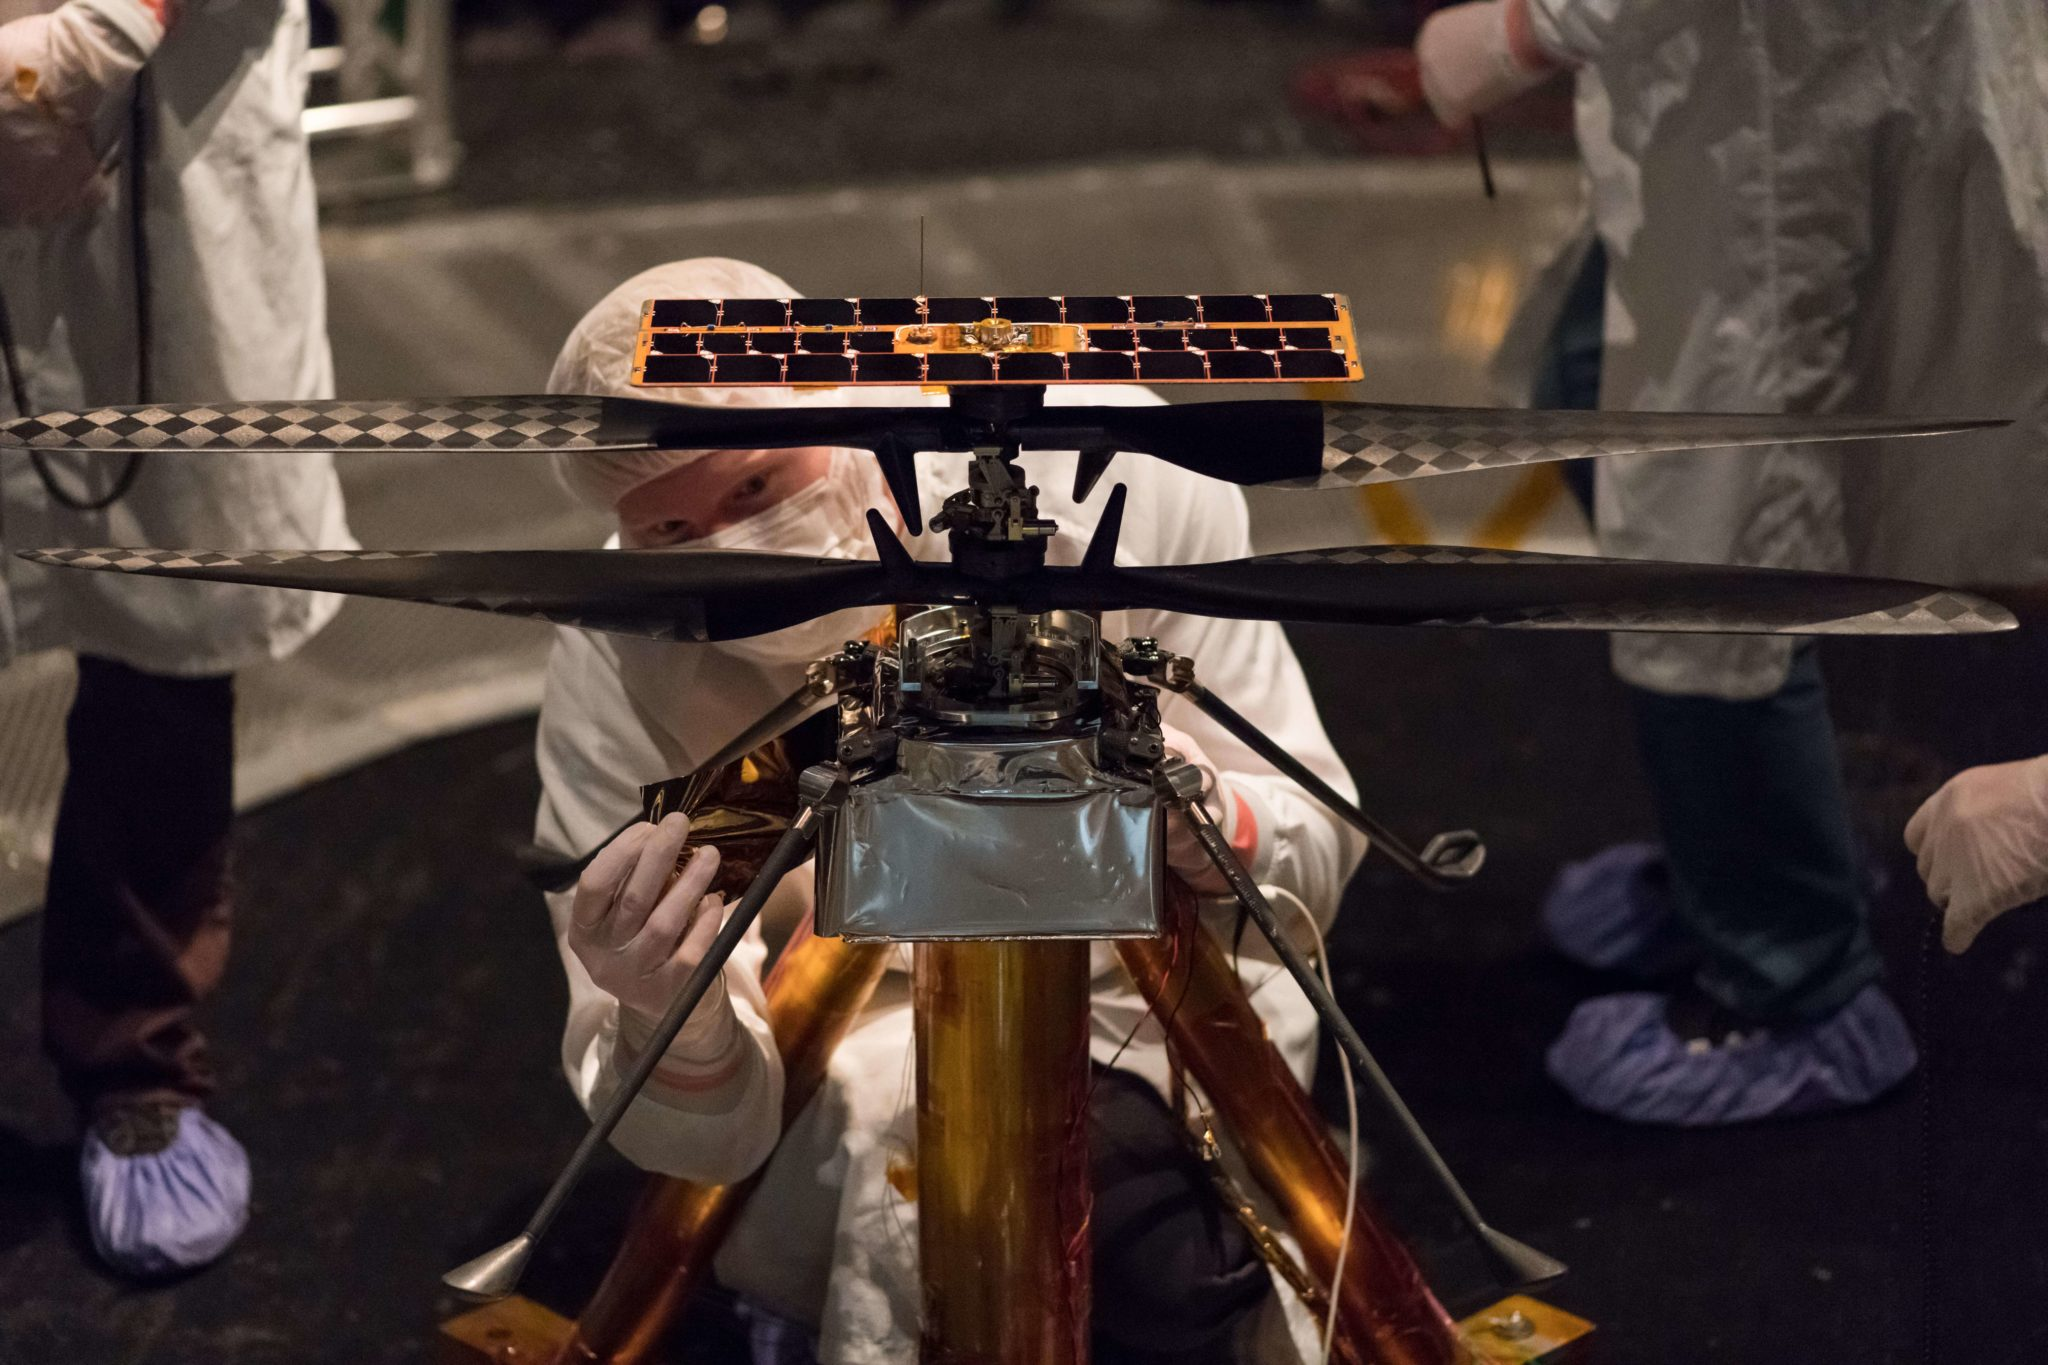 Mars Helicopter ready to fly to Red Planet